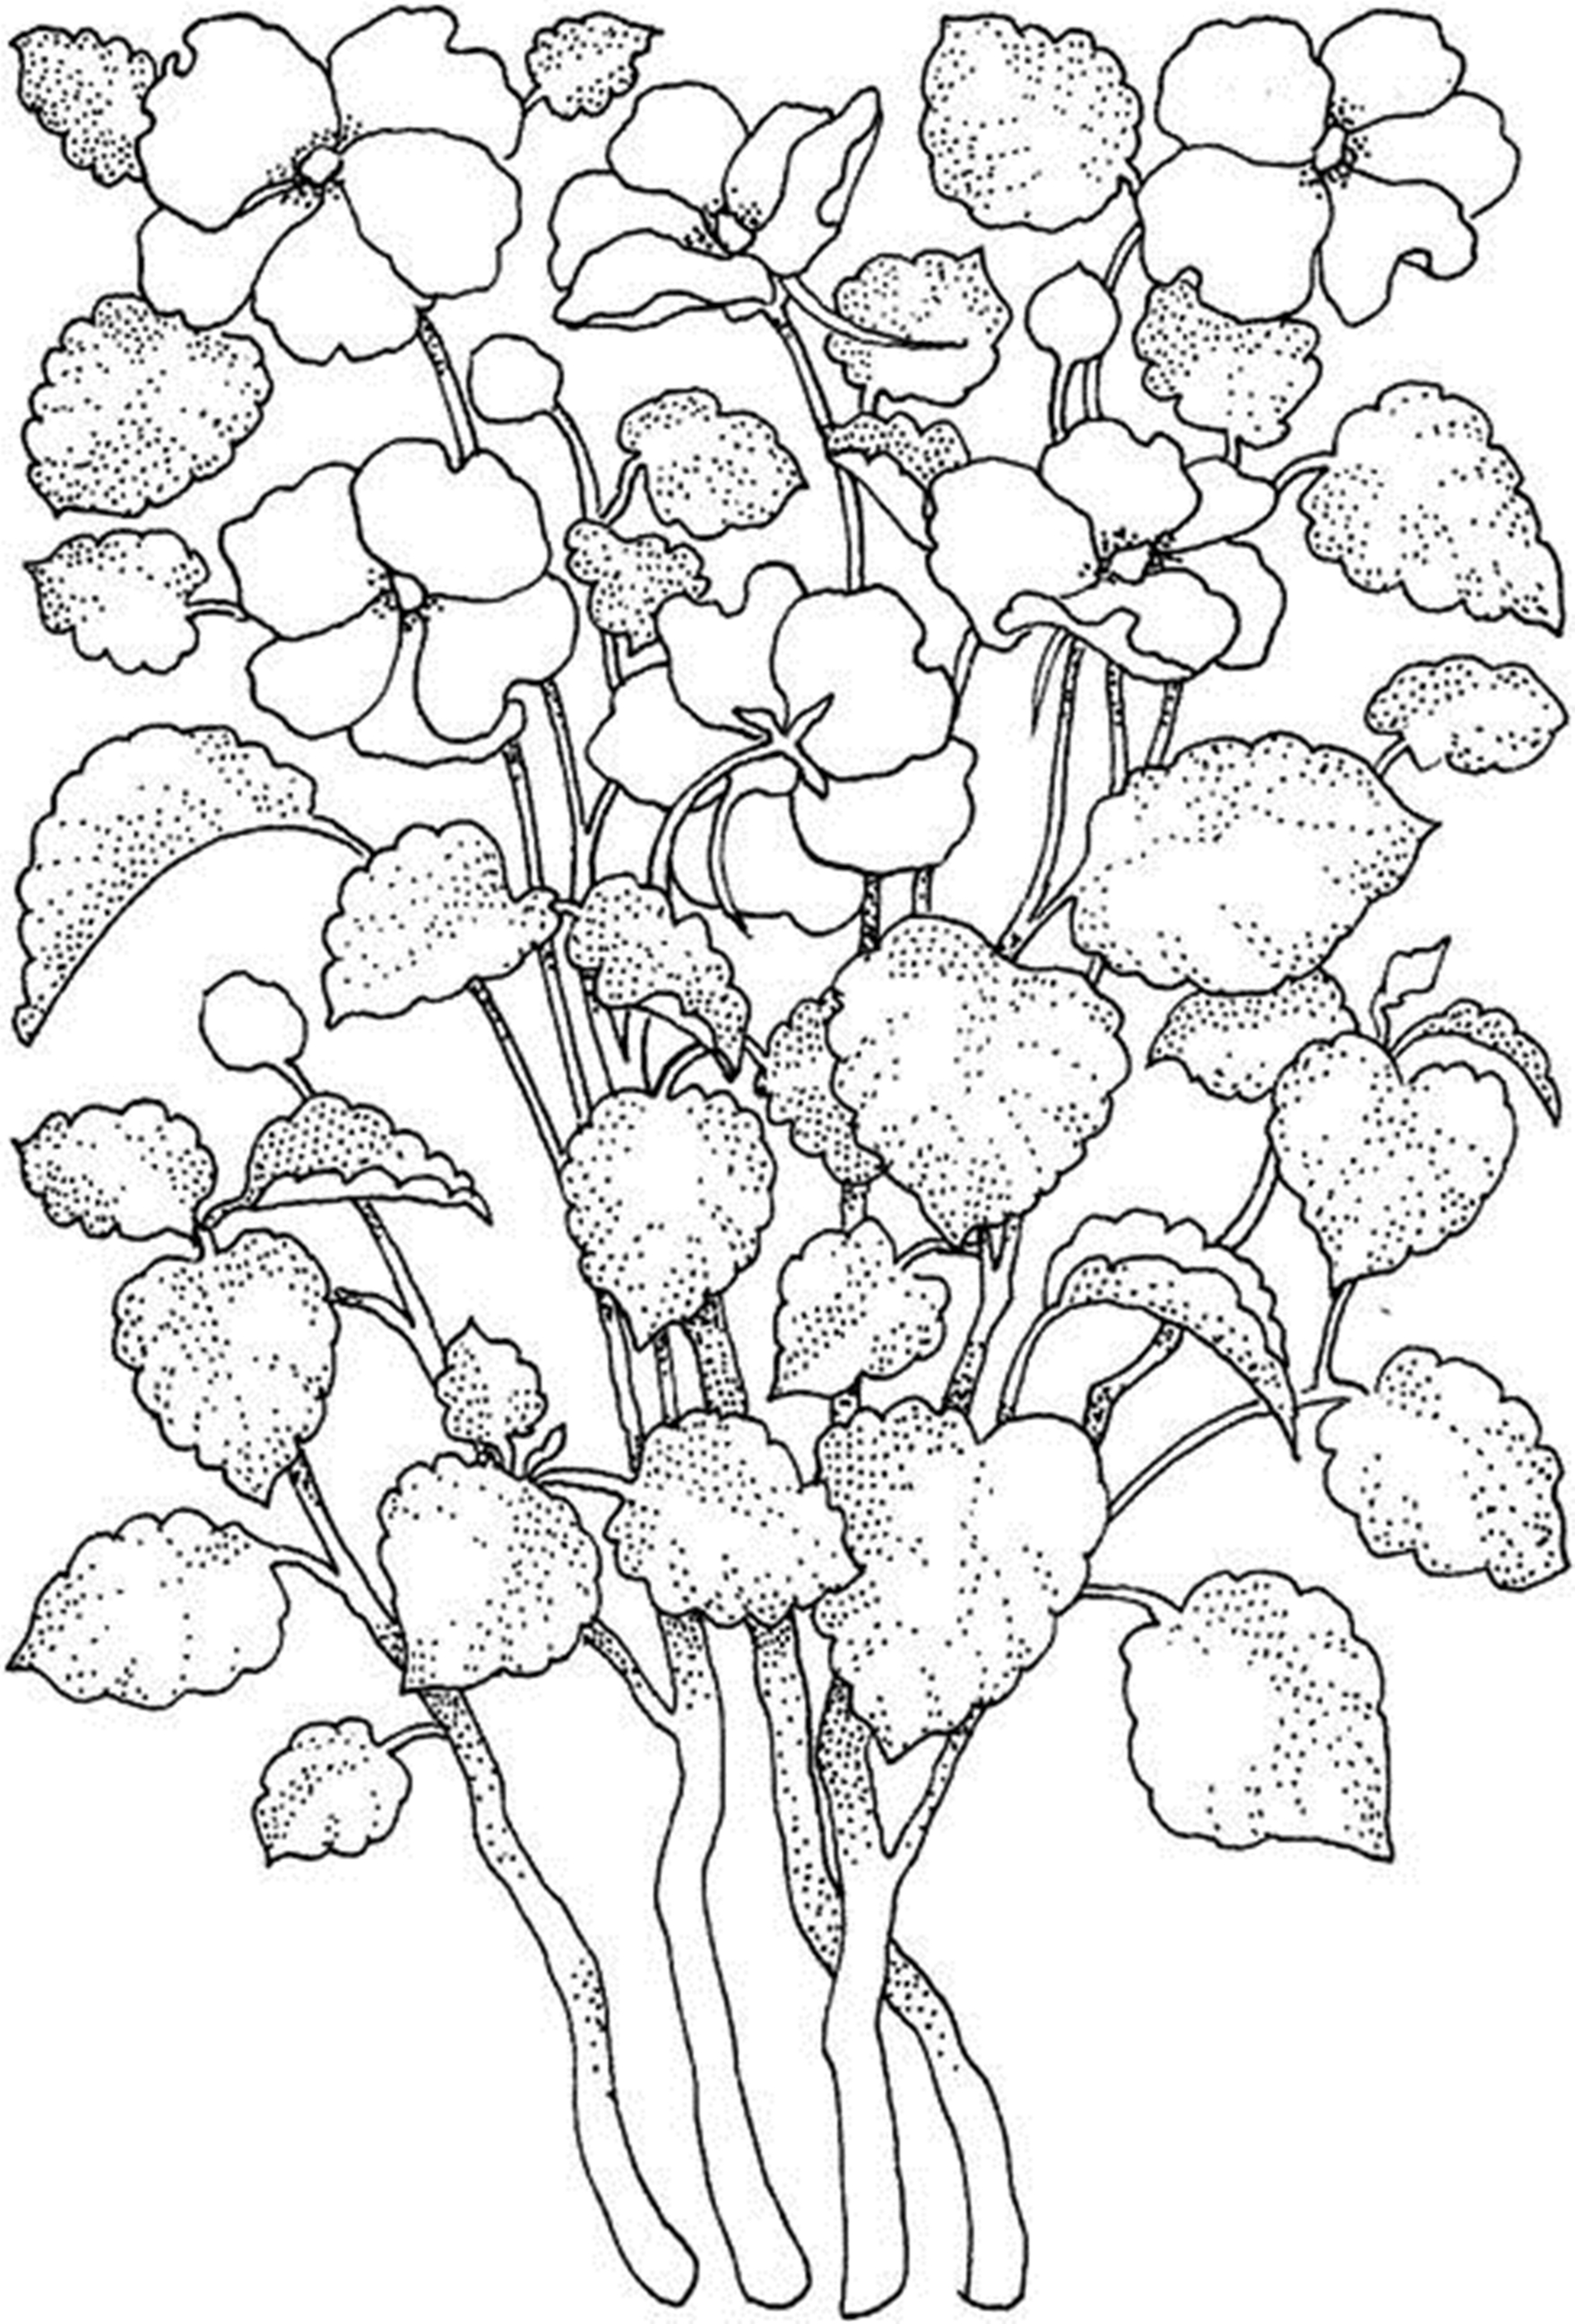 best colouring pages to print coloring pages for adults best friends unicorn colouring best to print pages colouring